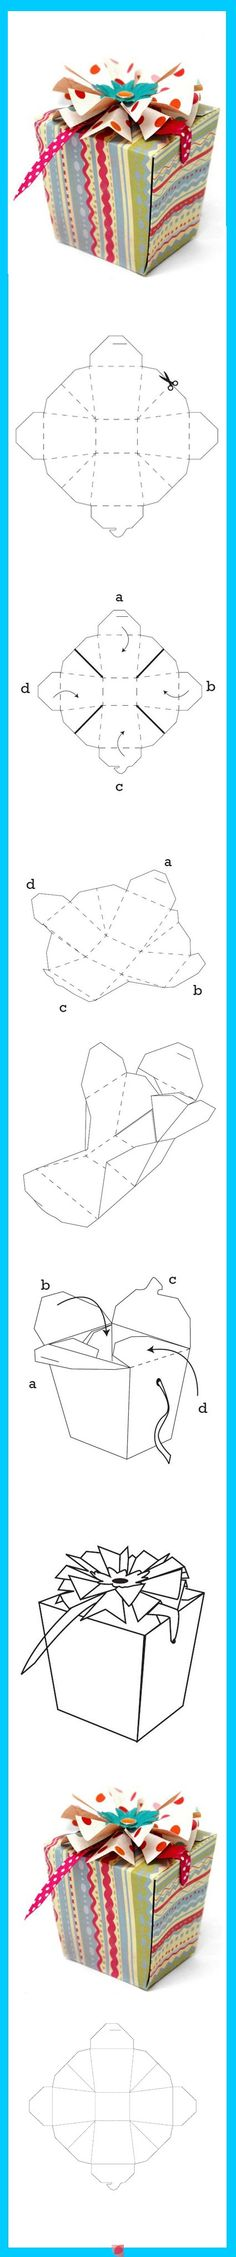 The shape is like a parcel or present, this could work like giving a gift to another person, or a gift to yourself.